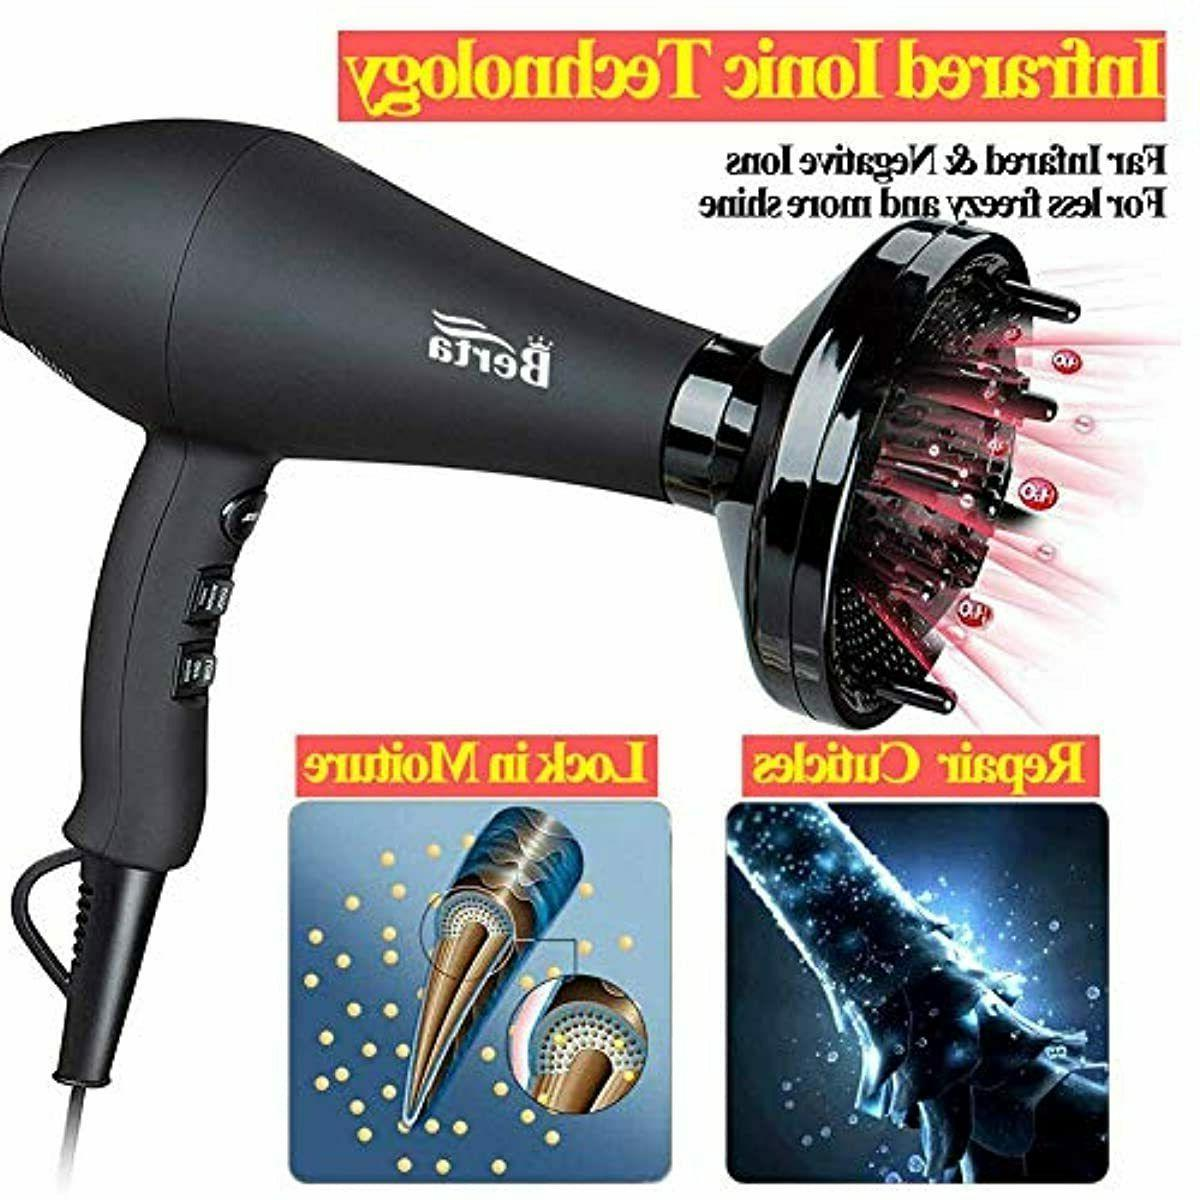 1875W Hair Dryer, Jinri Minute Fast Drying Infrared Blow Dryer wi